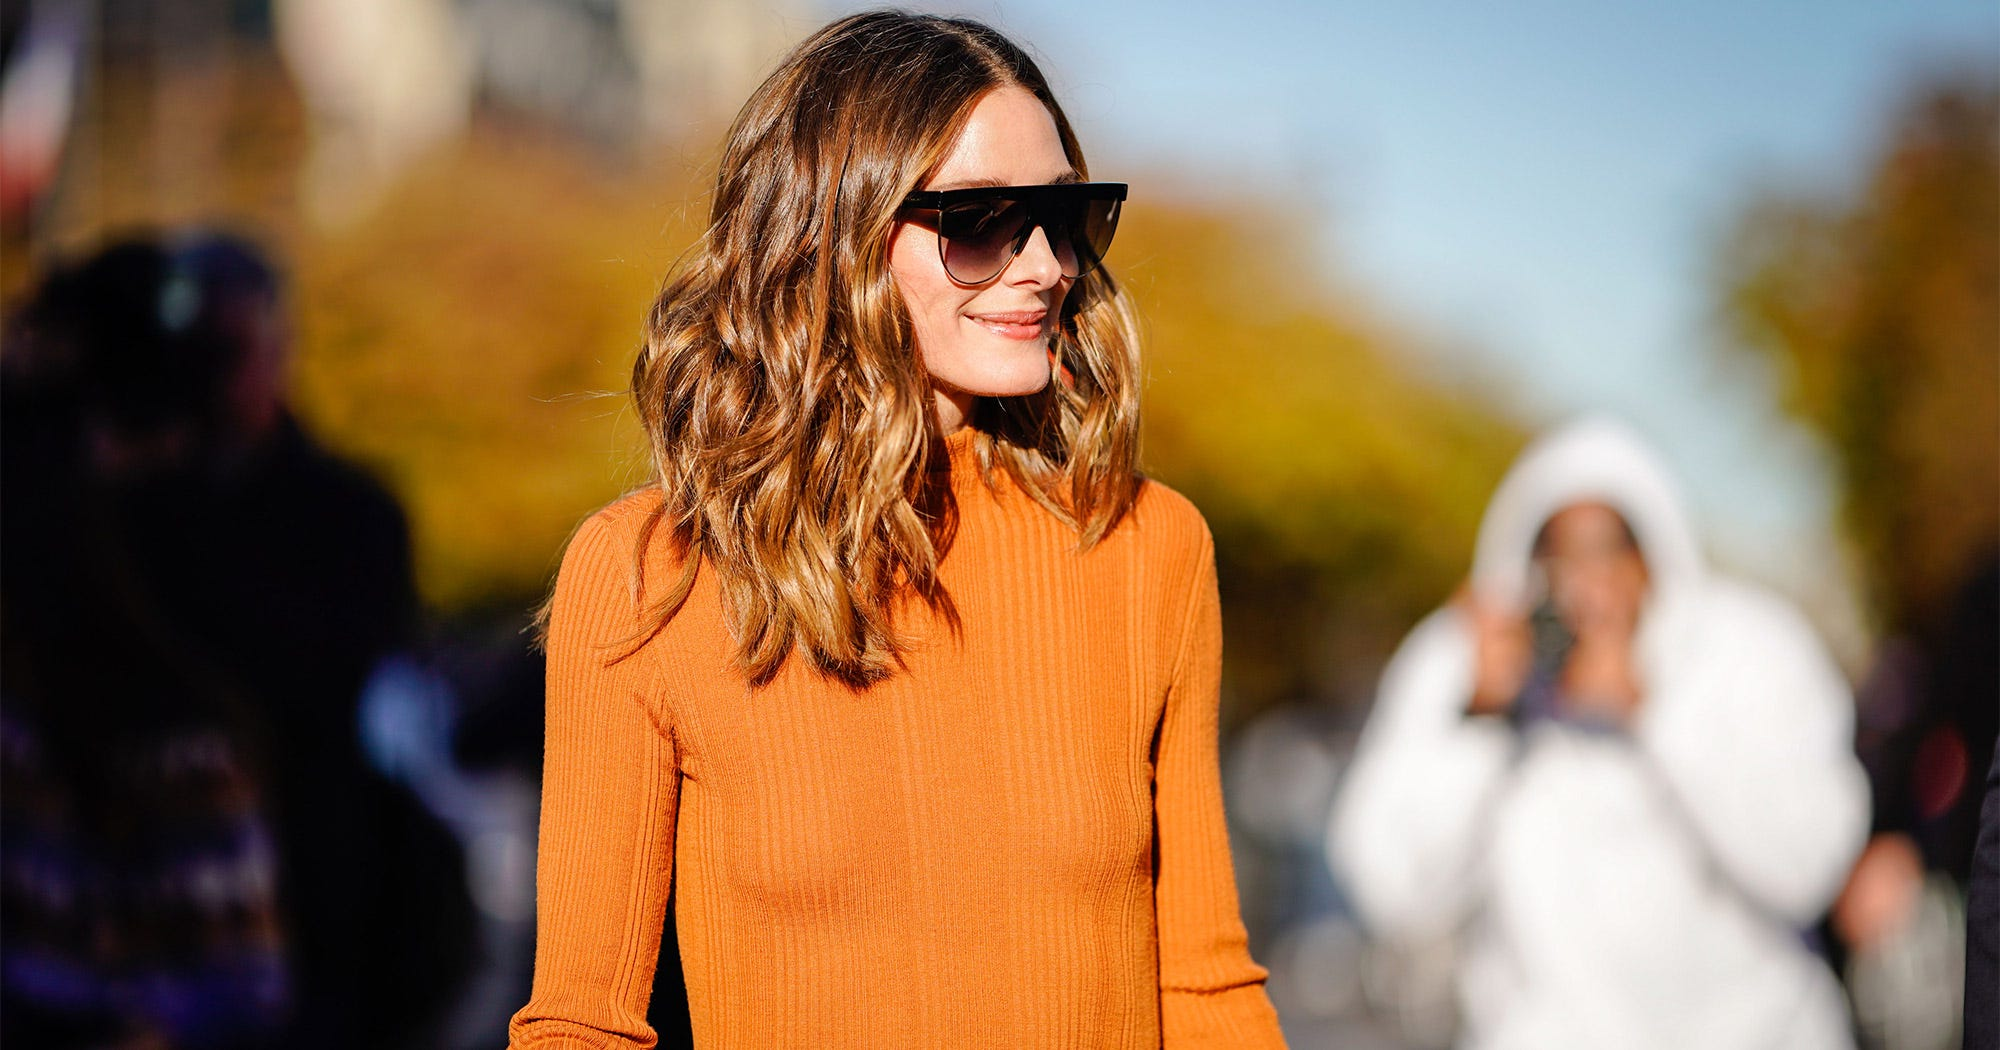 Hairstyles 2019: Trendy Hairstyles Our Editors Cant Wait To Try In 2019